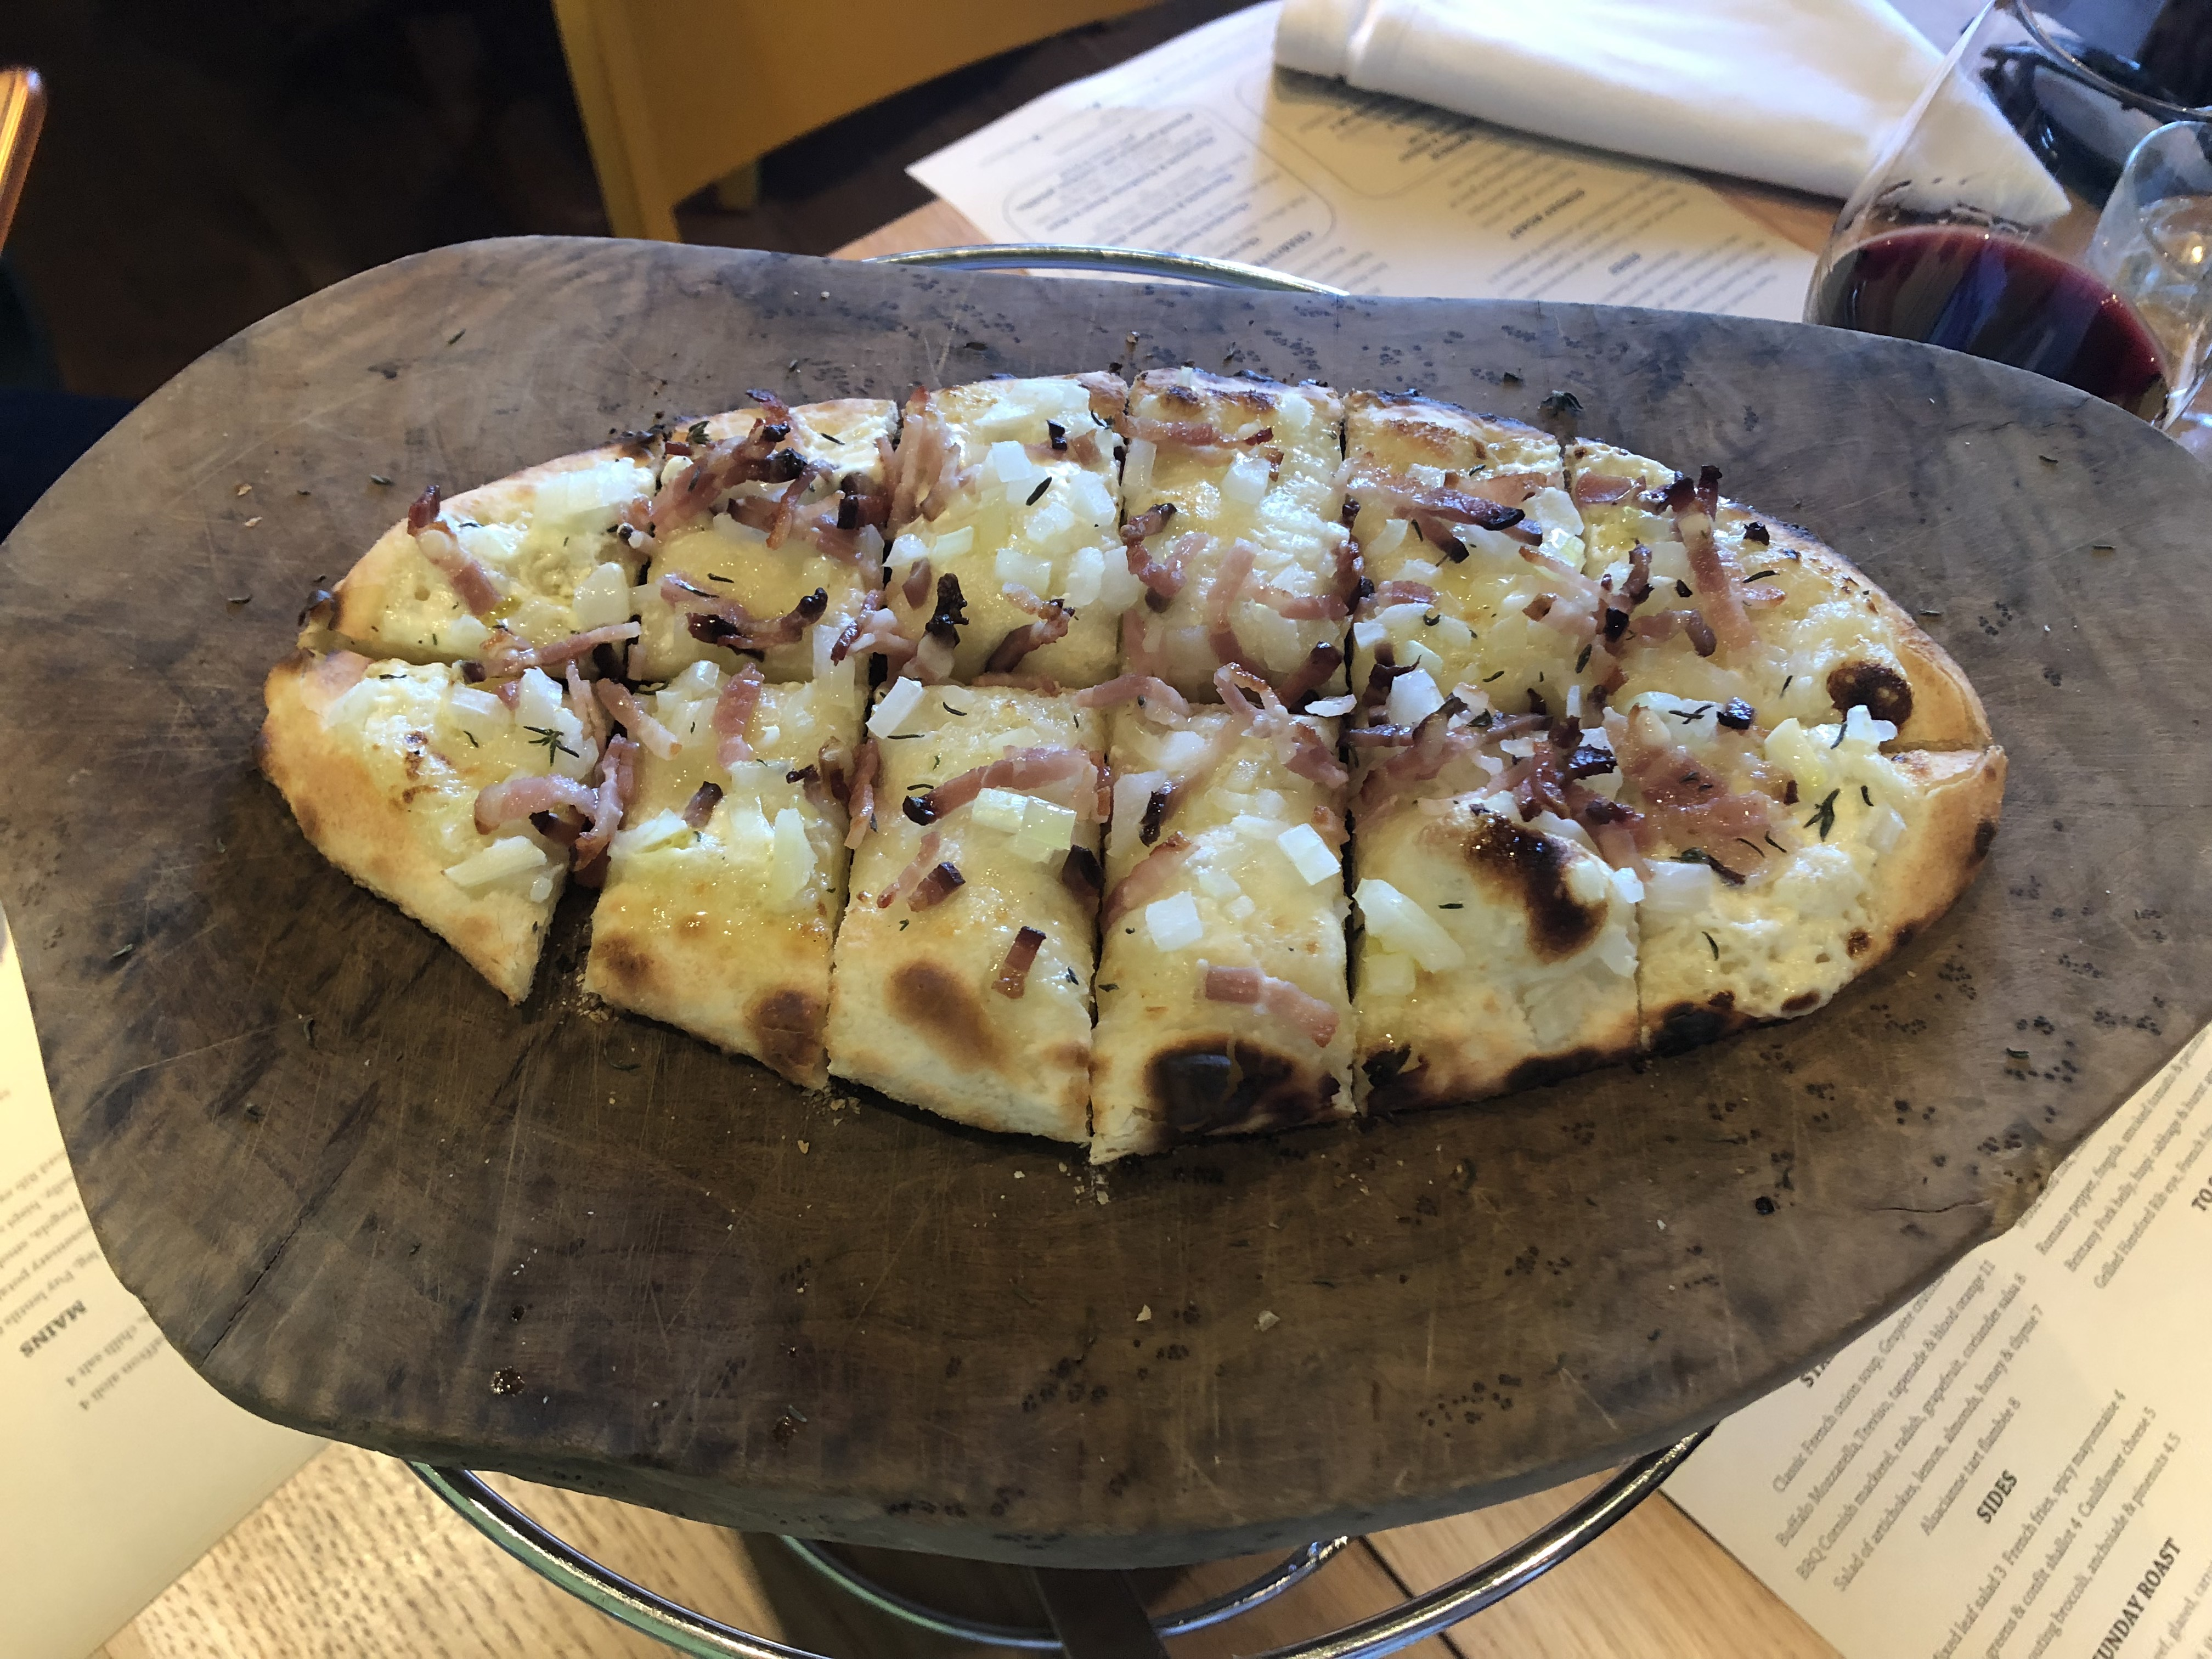 Galvin HOP - Is this the best Sunday Roast in London? Alascianne Tart Flambee